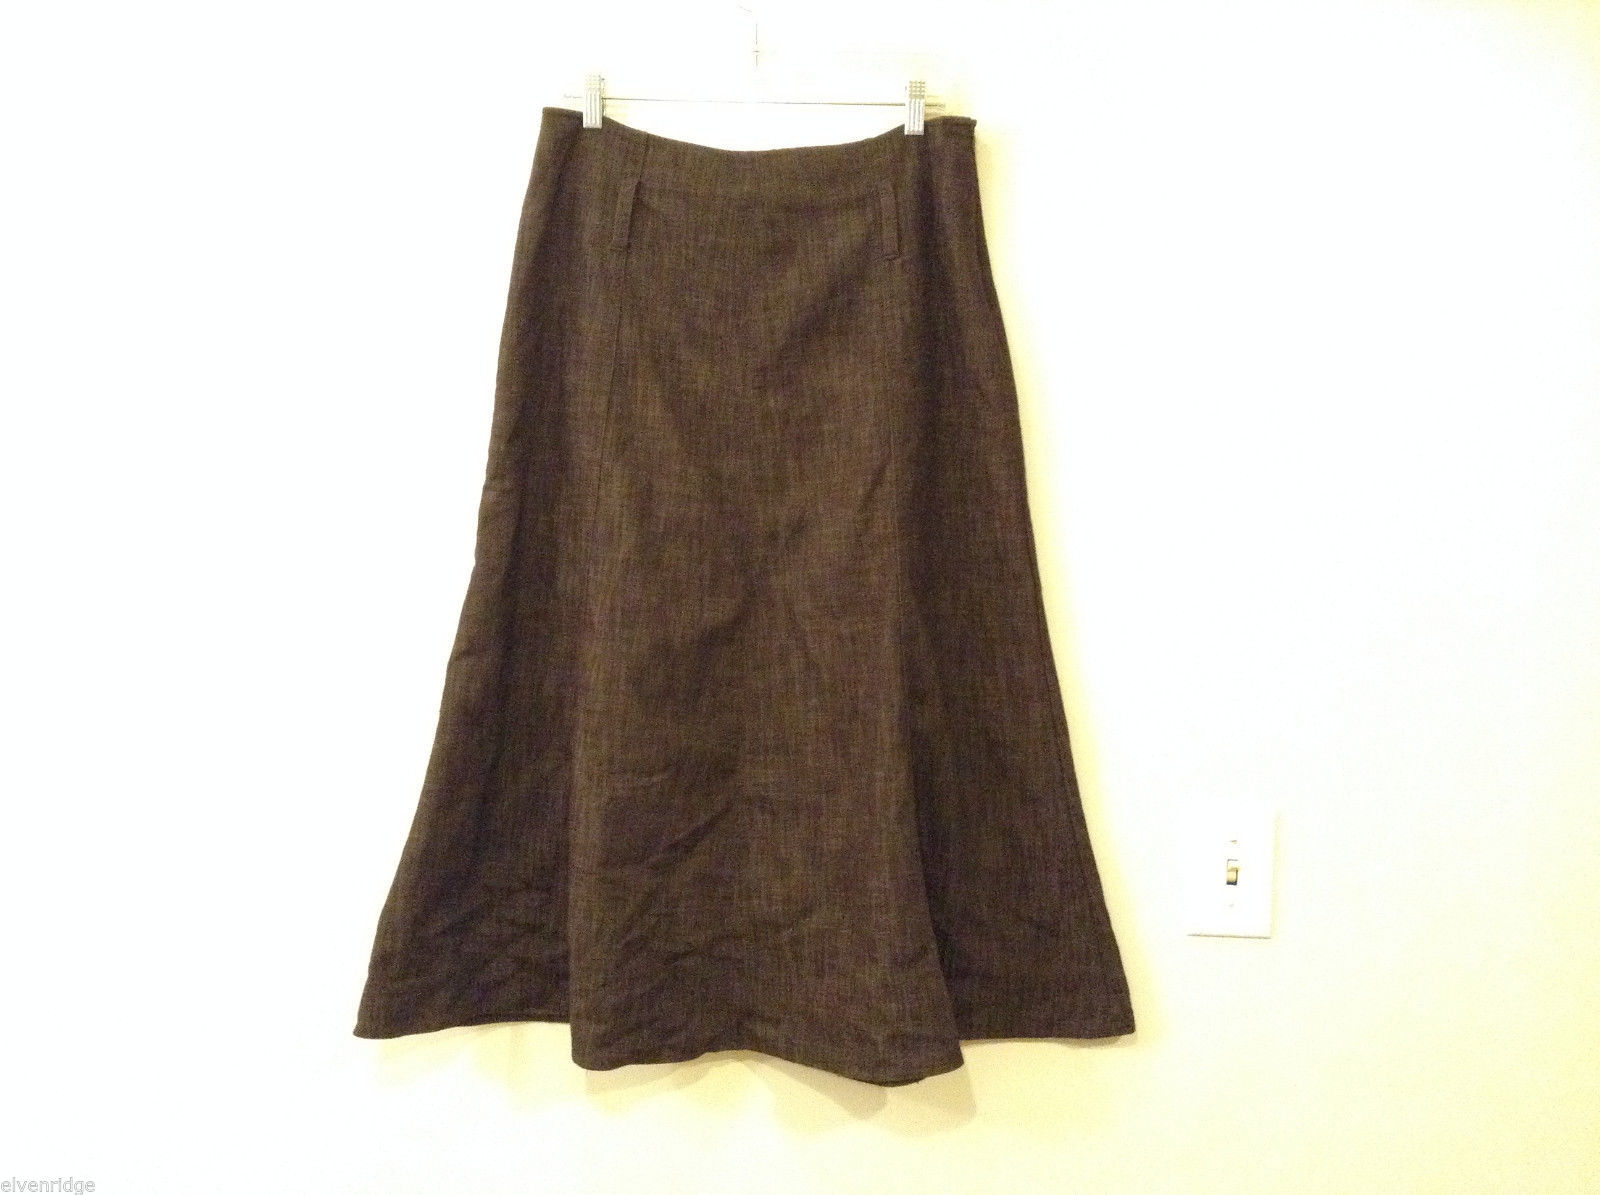 Dressbarn Brown Color Cotton-Poly A-line Long Skirt, size10, unlined Belt loops